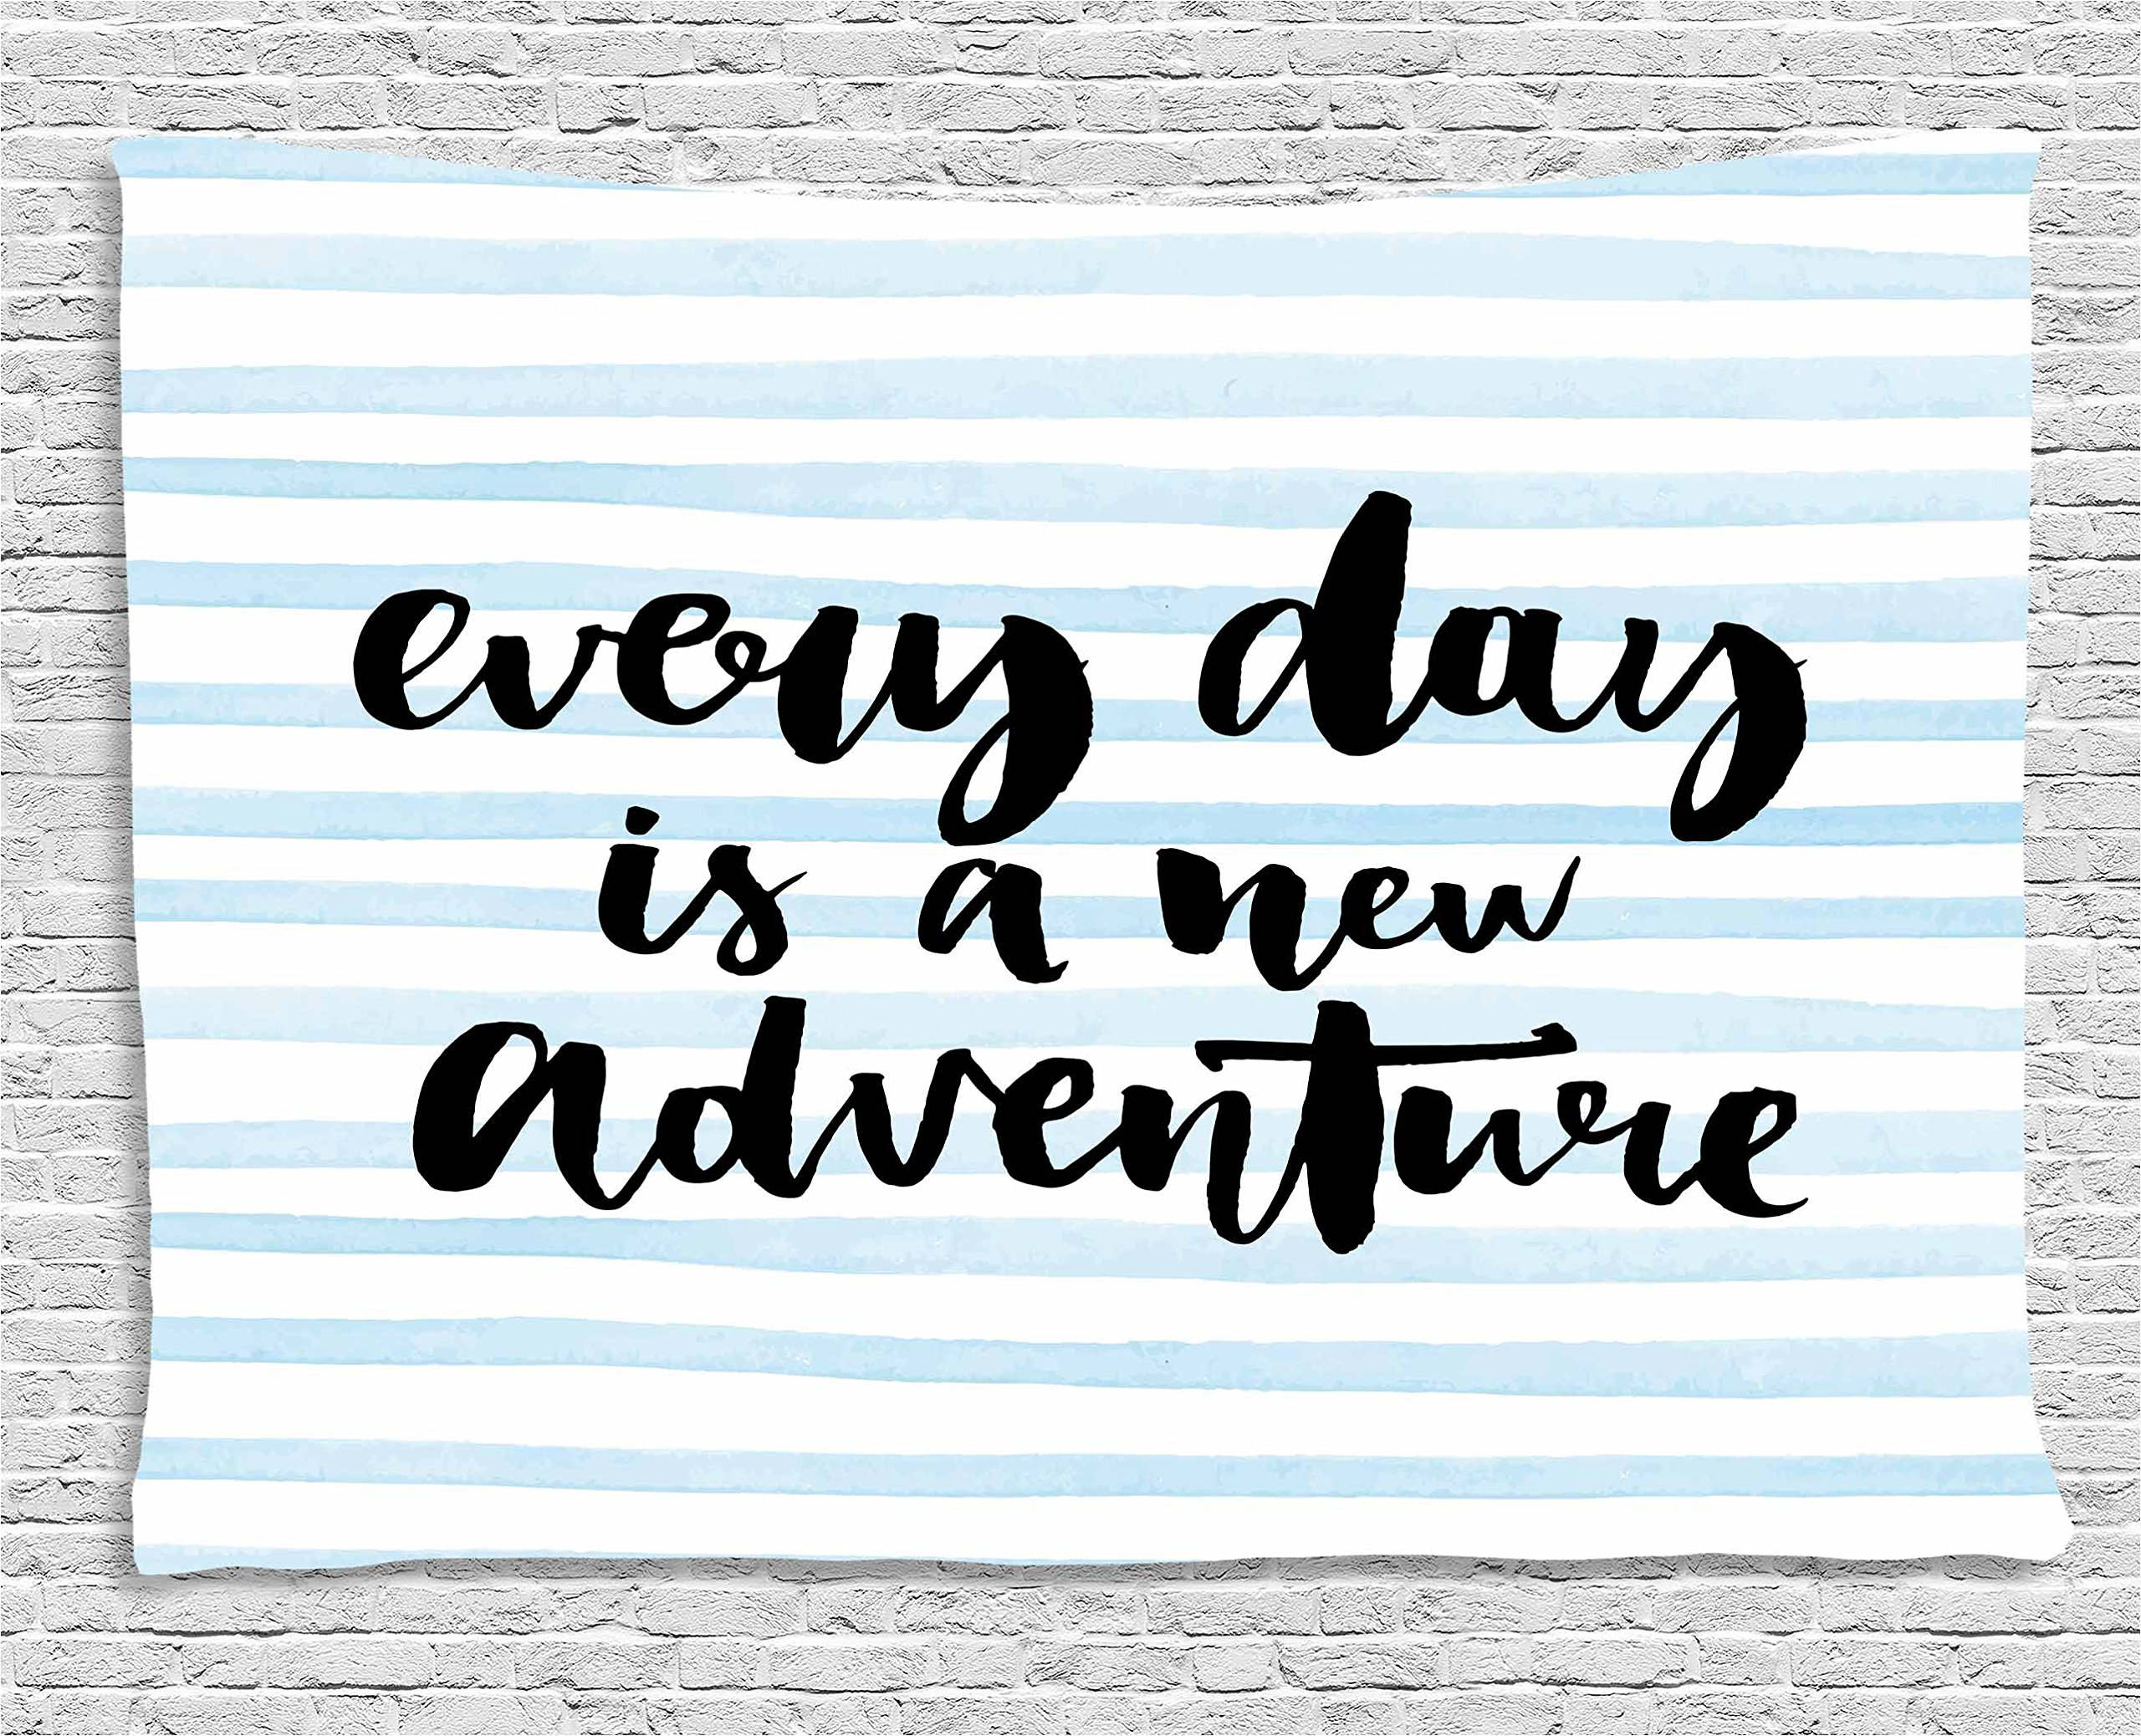 Ambesonne Inspirational Quotes Tapestry, Every Day is a New Adventure Calligraphy Text Watercolor Stripes Print, Wall Hanging for Bedroom Living Room Dorm, 60 W X 40 L inches, Light Blue by Ambesonne